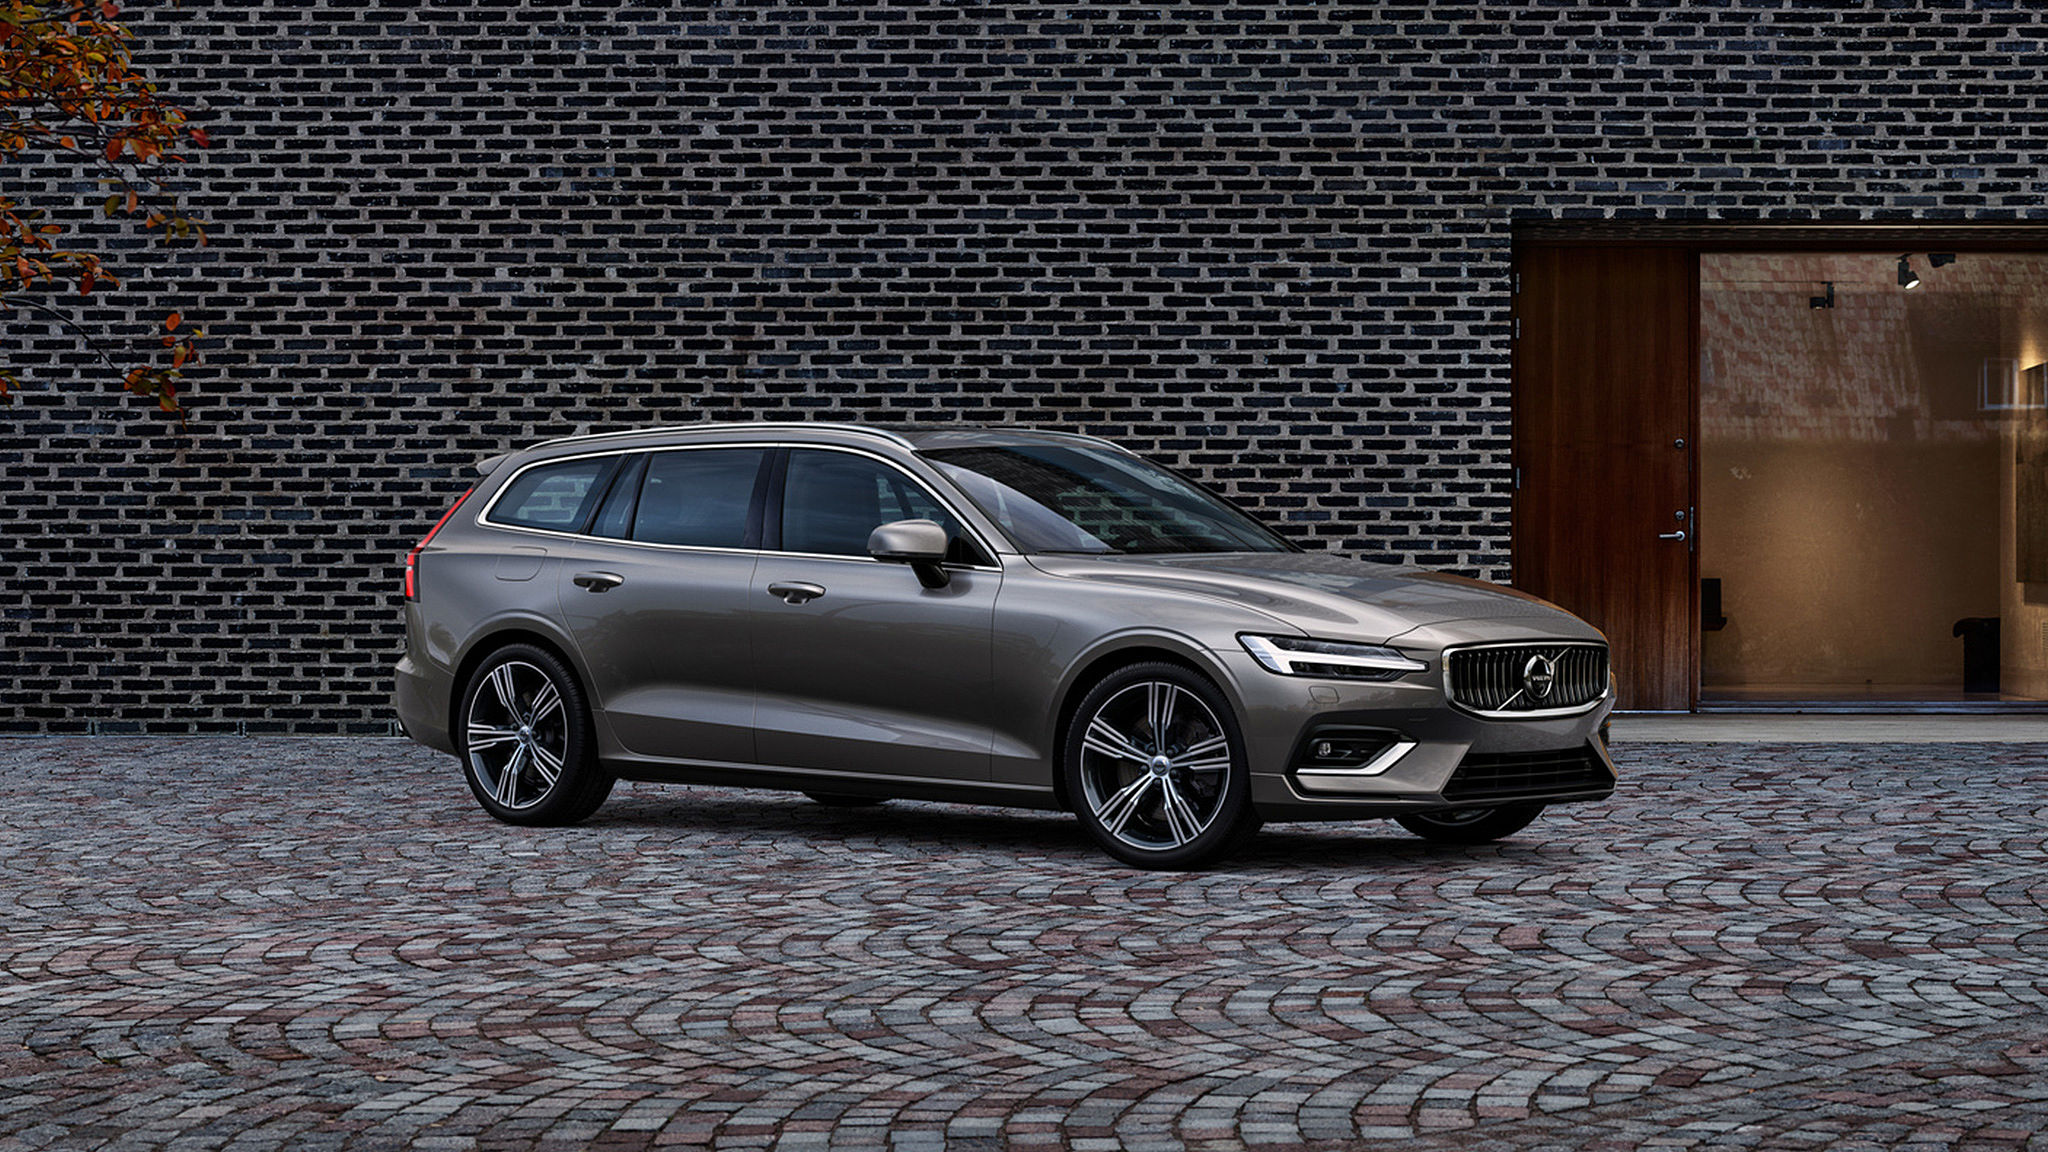 VOLVO APPROVED USED V60 WITH 0% APR FINANCE